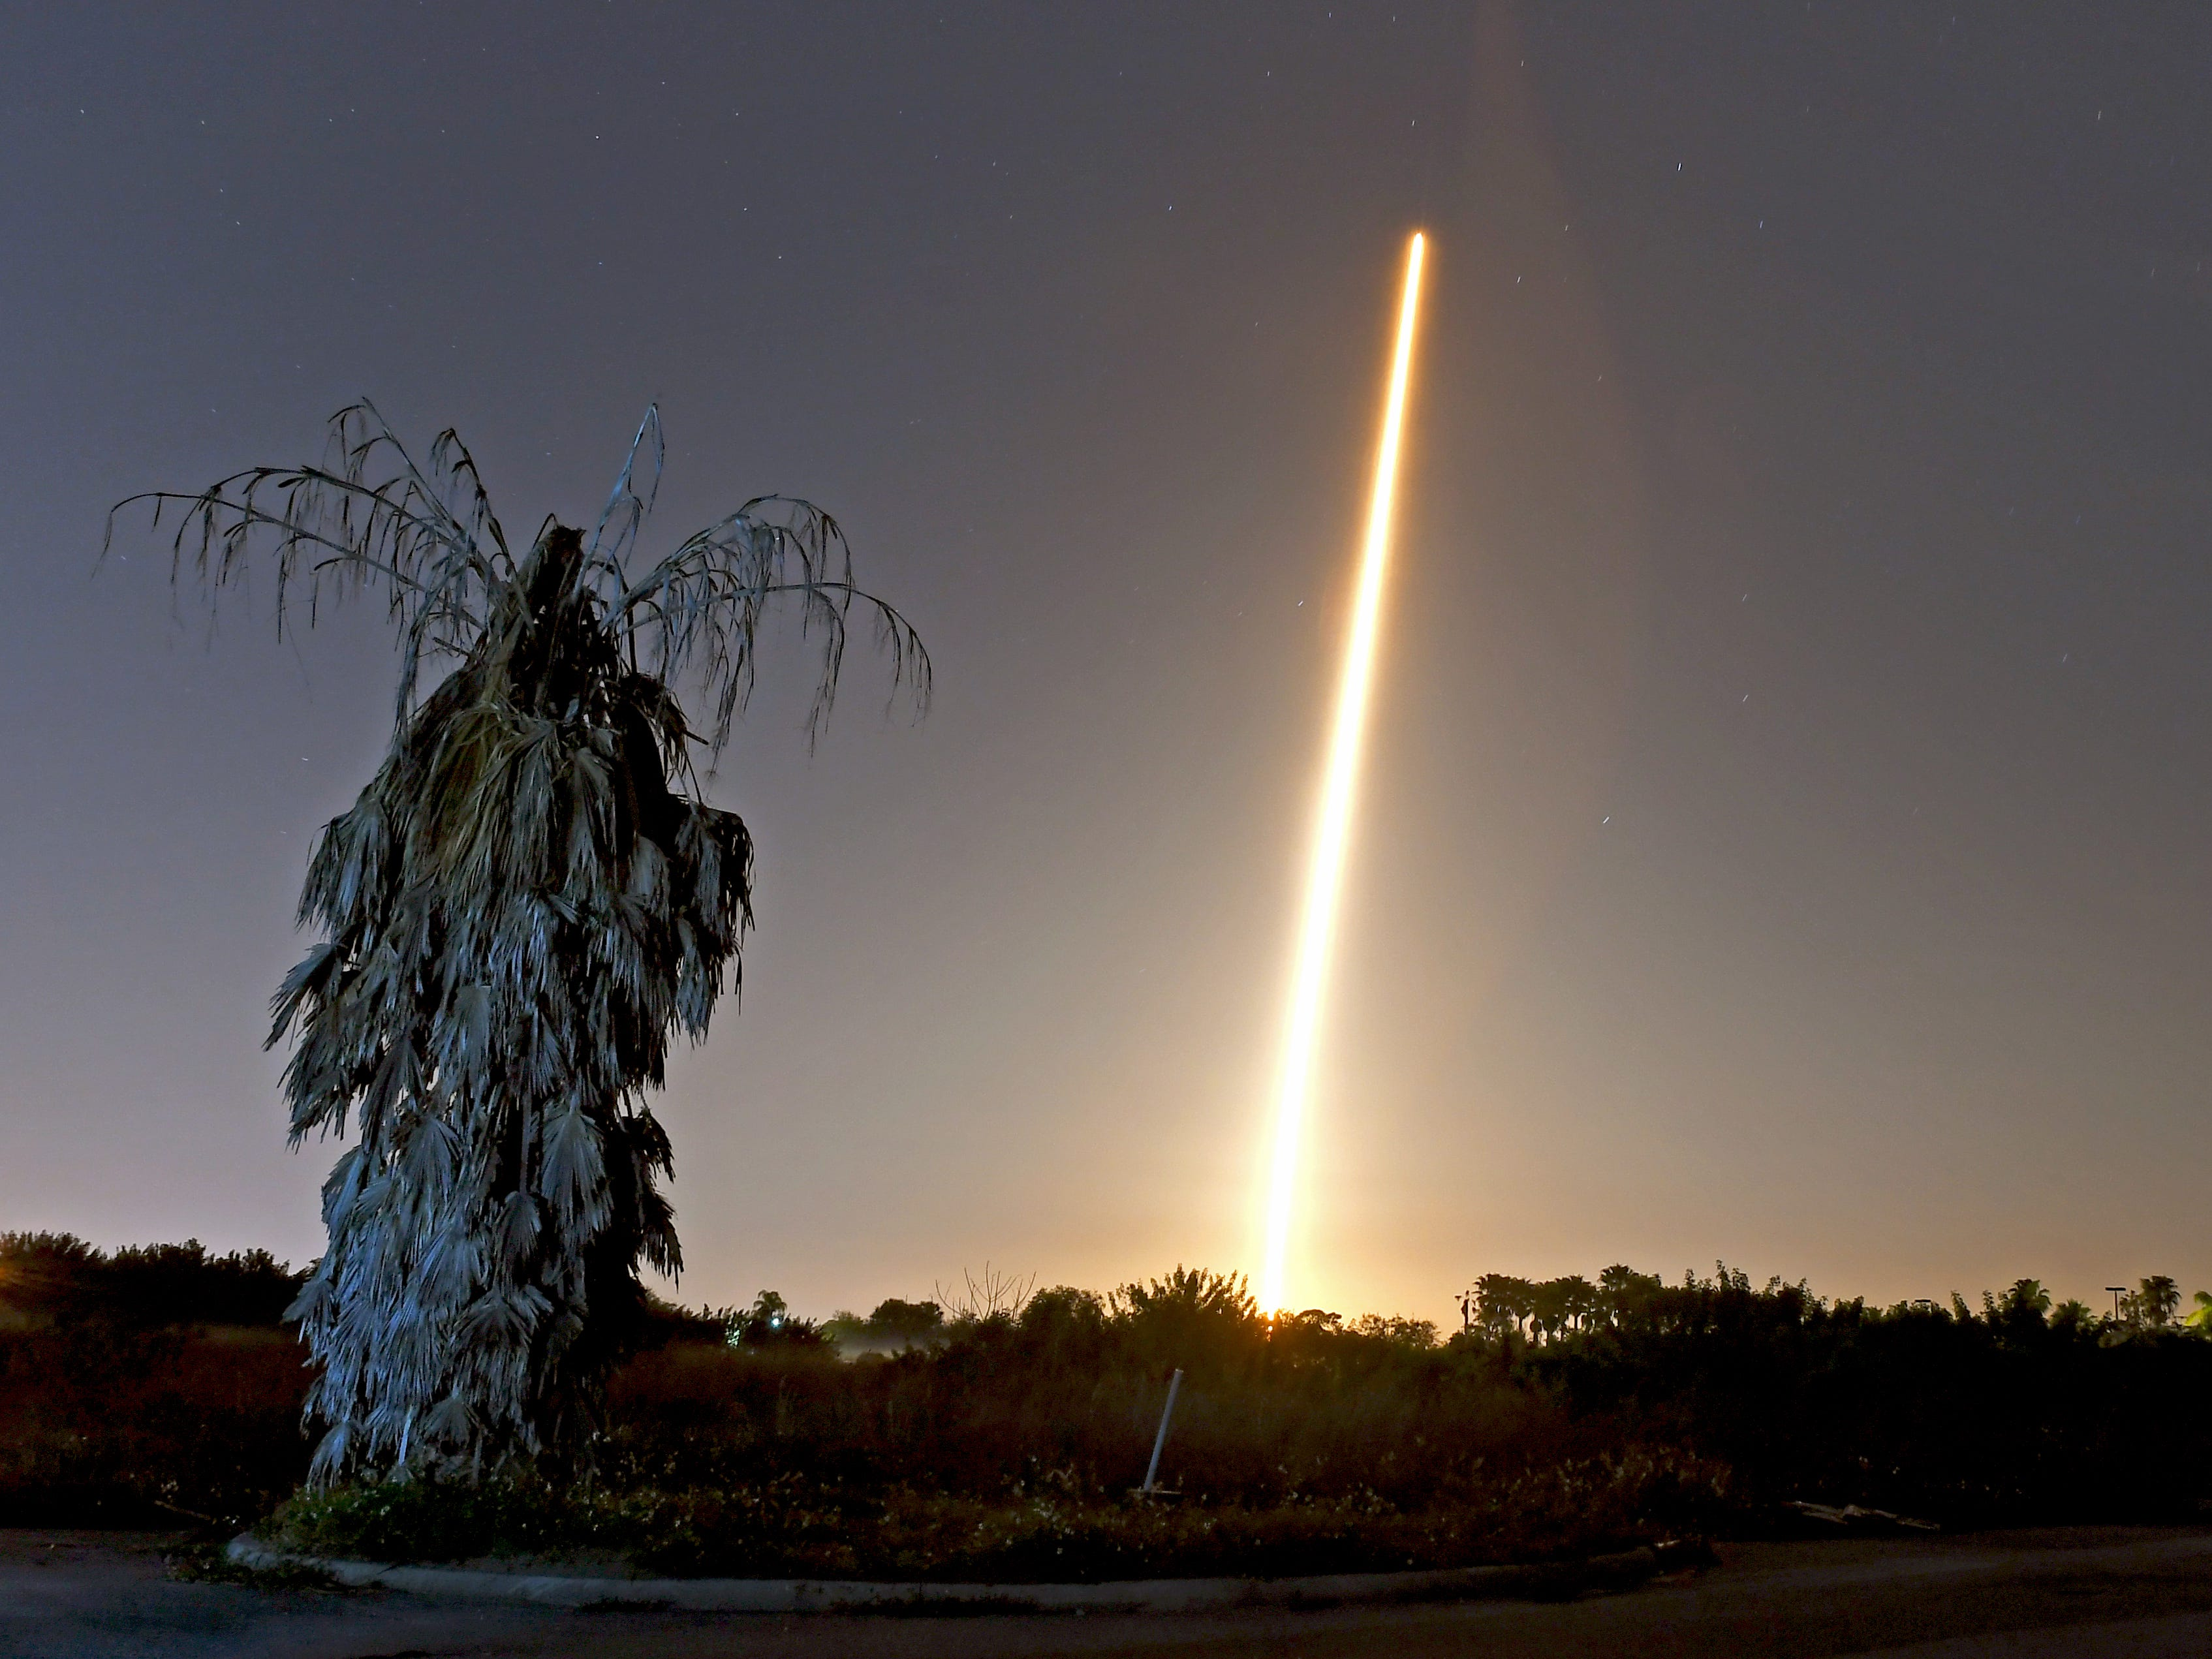 The SpaceX rocket launch with Crew Dragon capsule as seen in a time exposure from Viera.